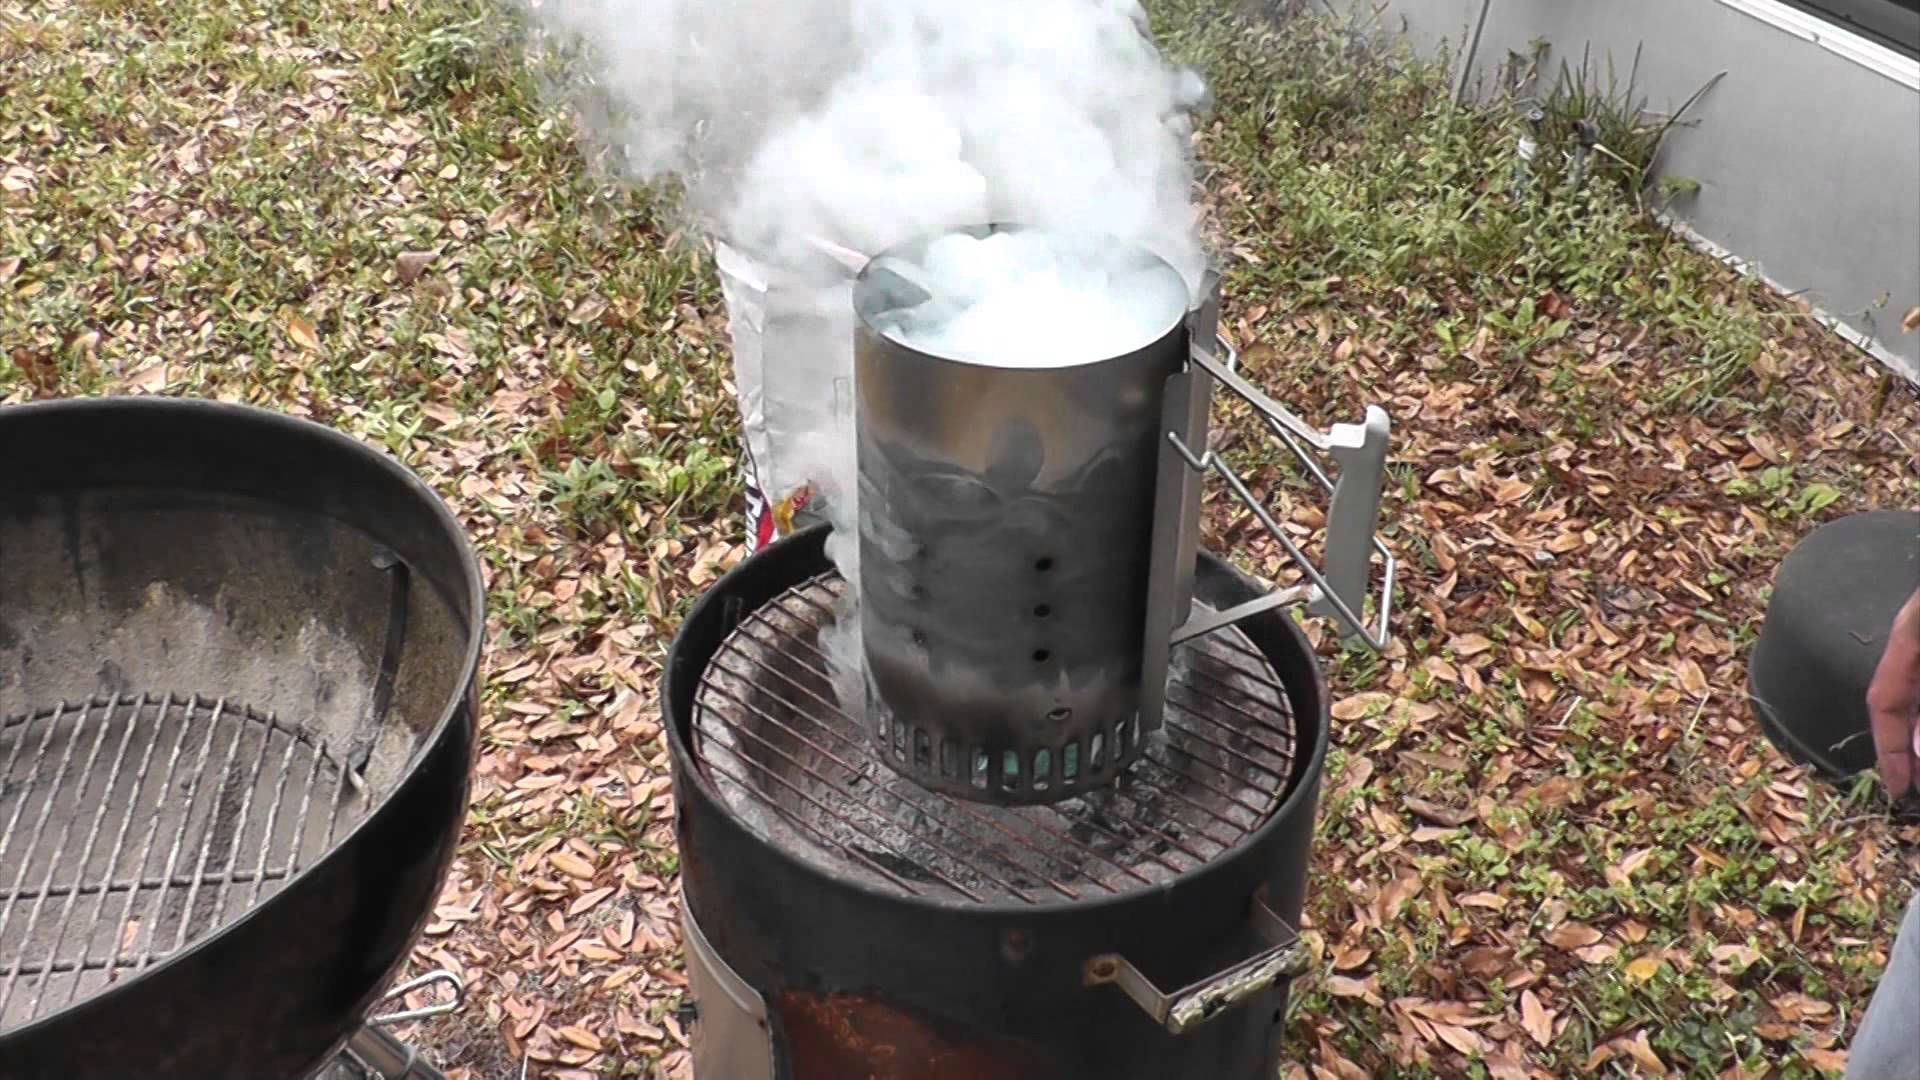 How To Use A Chimney Starter Best Charcoal Bbq Equipment Best Fire Starter